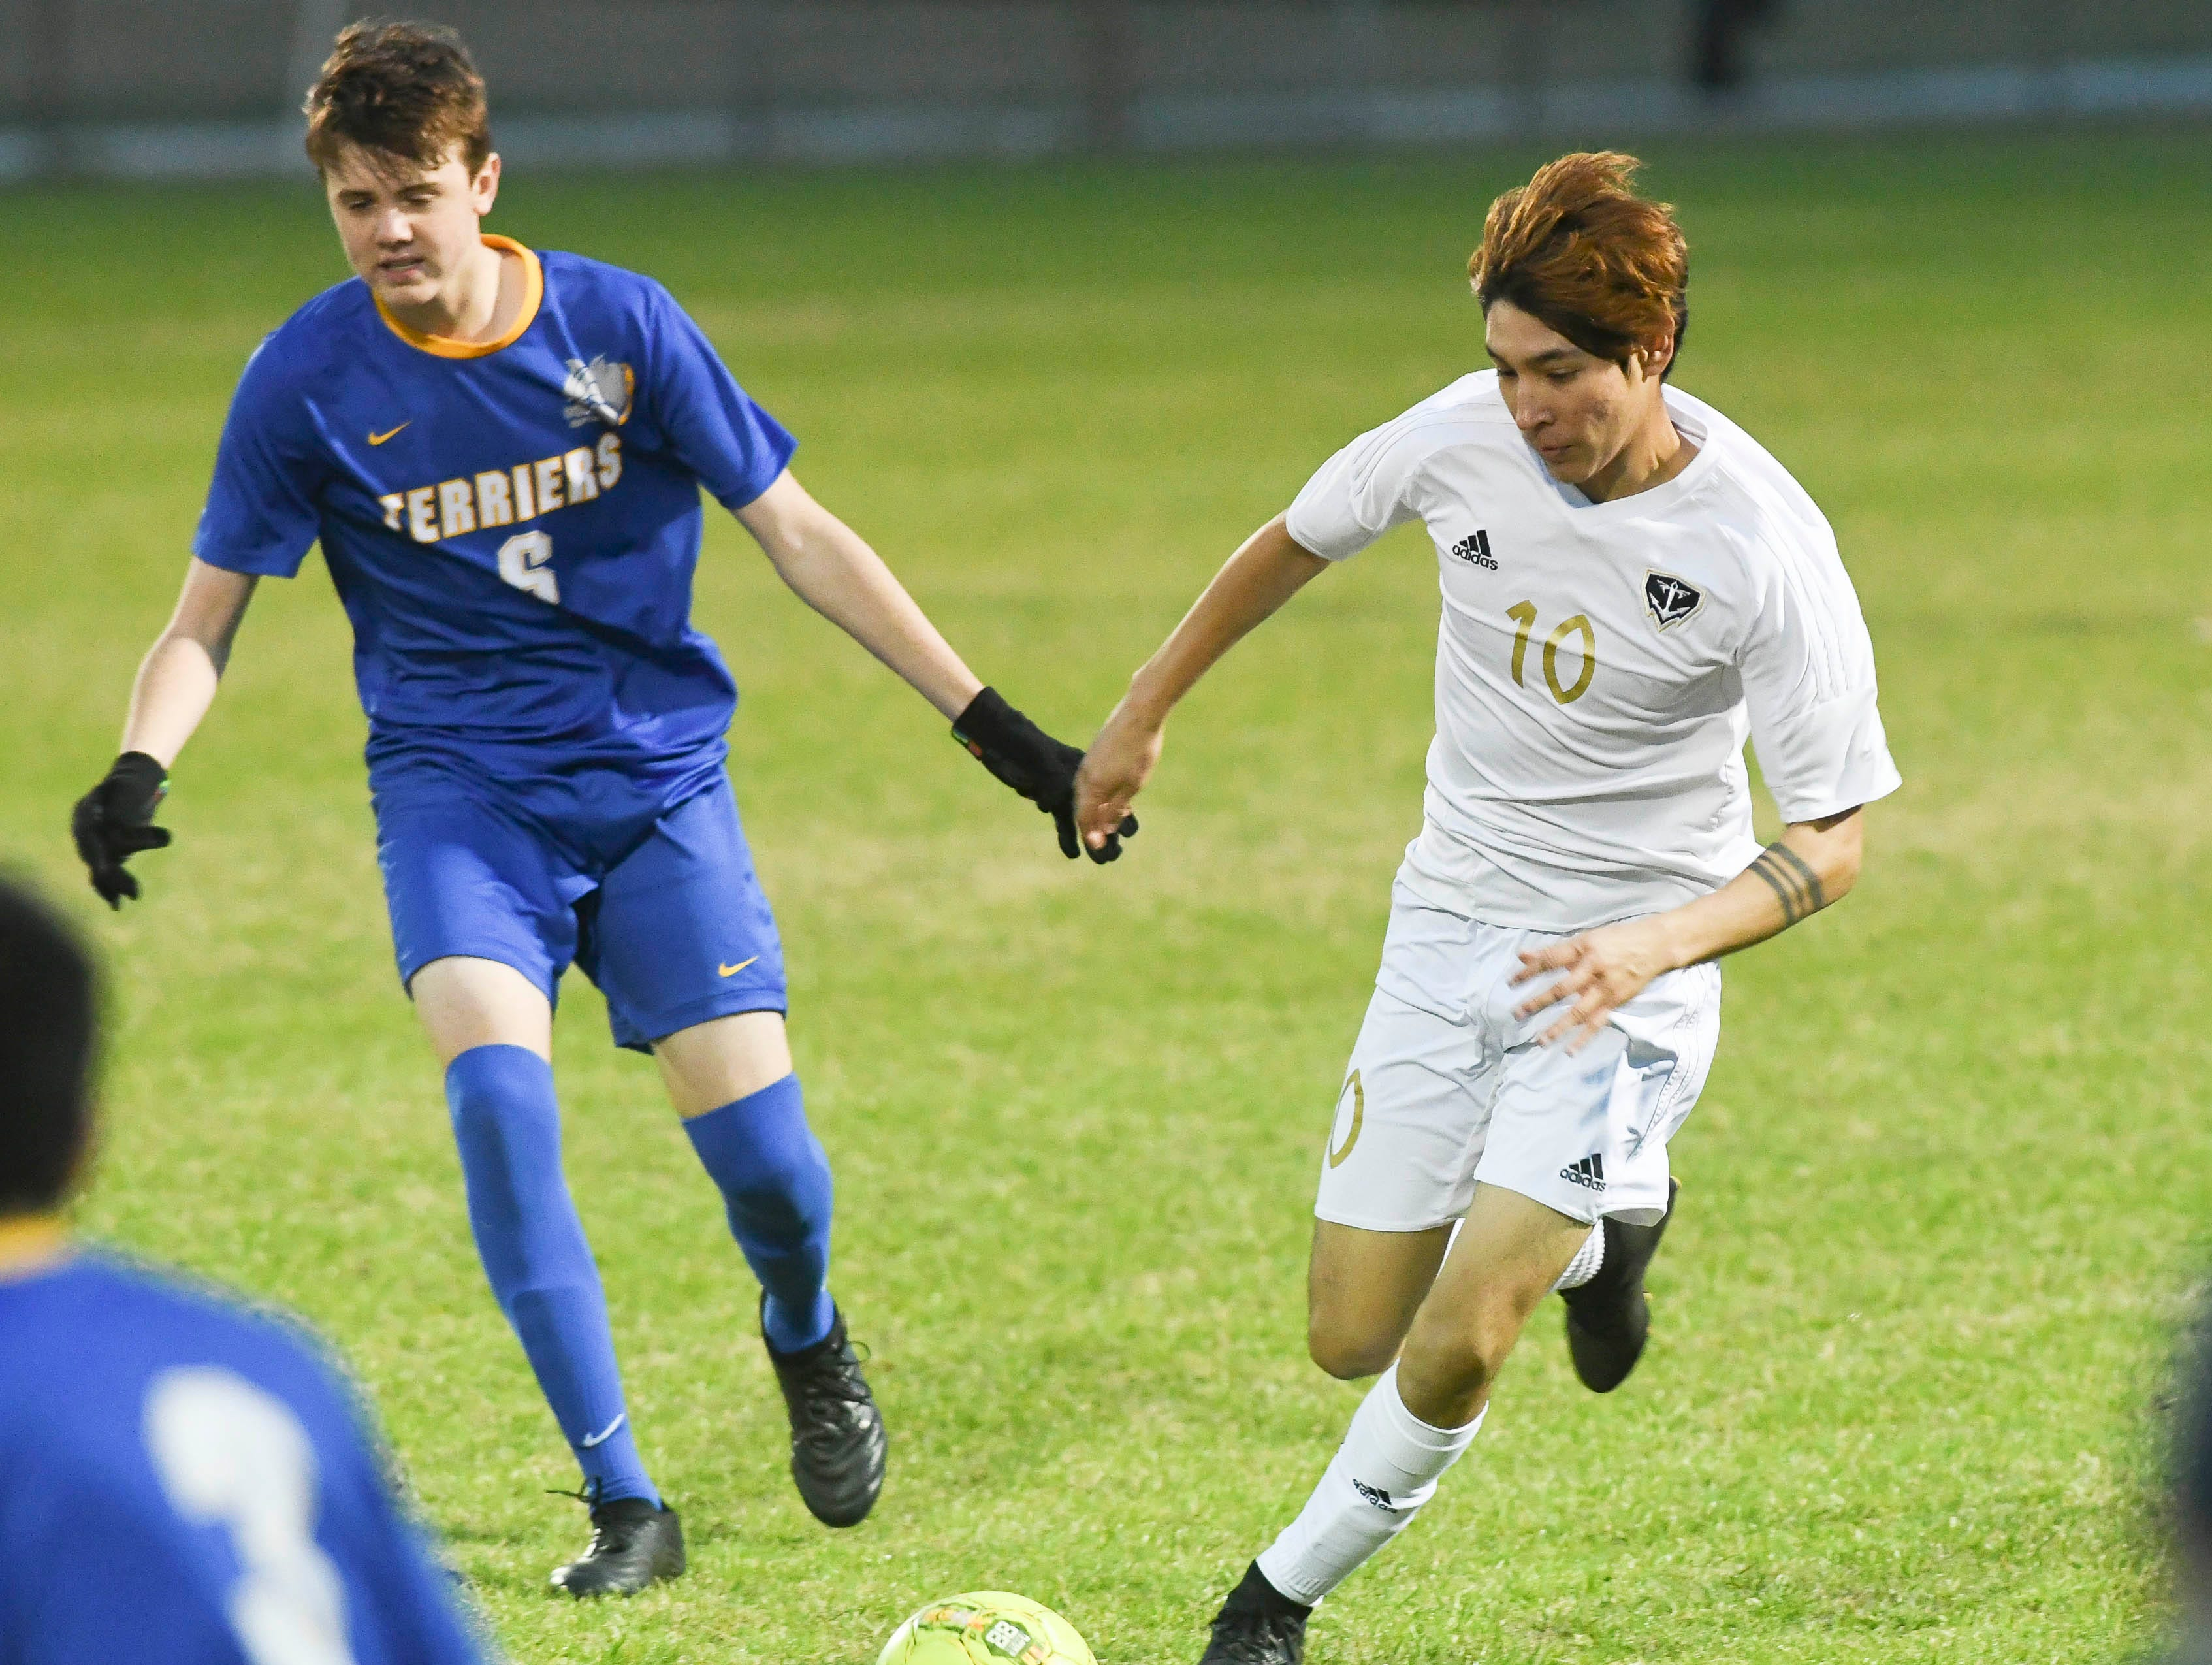 Eau Gallie's Jesus Rascon (10) is pursued by Josh Fox of Titusville during Wednesday's District 12, Class 3A semifinal at McLarty Stadium